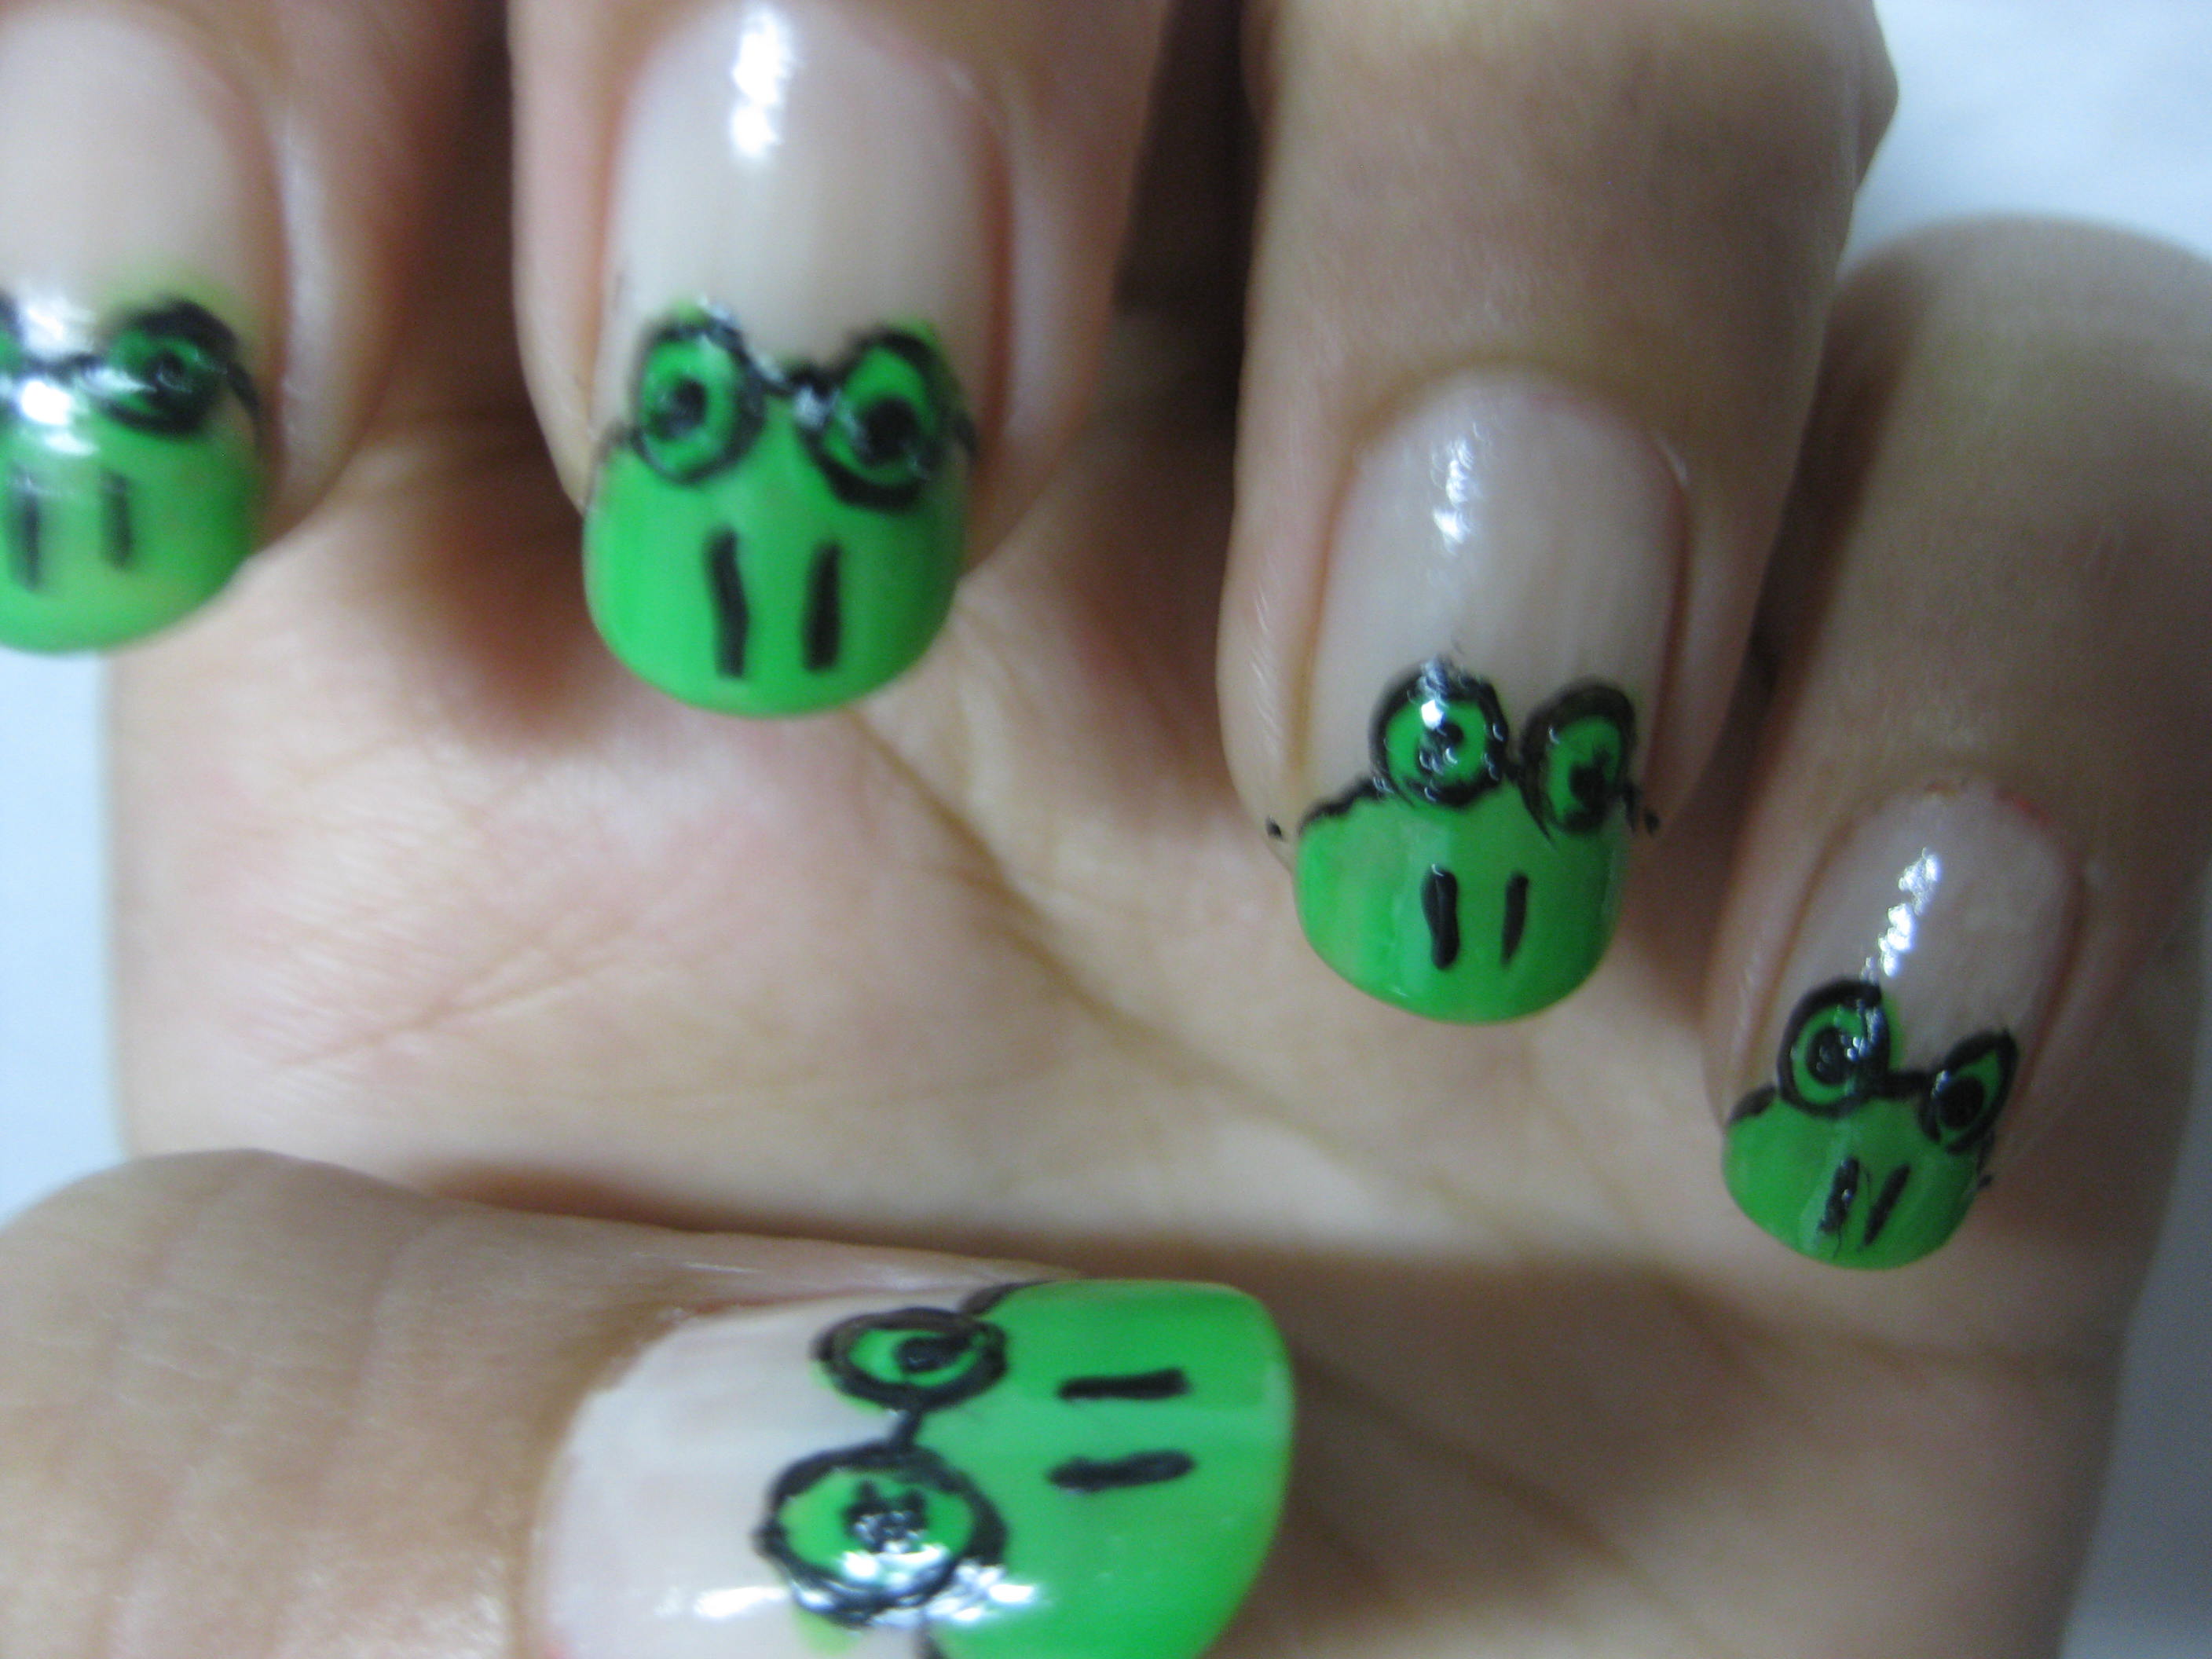 31 Day Nail Art Challenge: Frog nail art | Gone Trendy